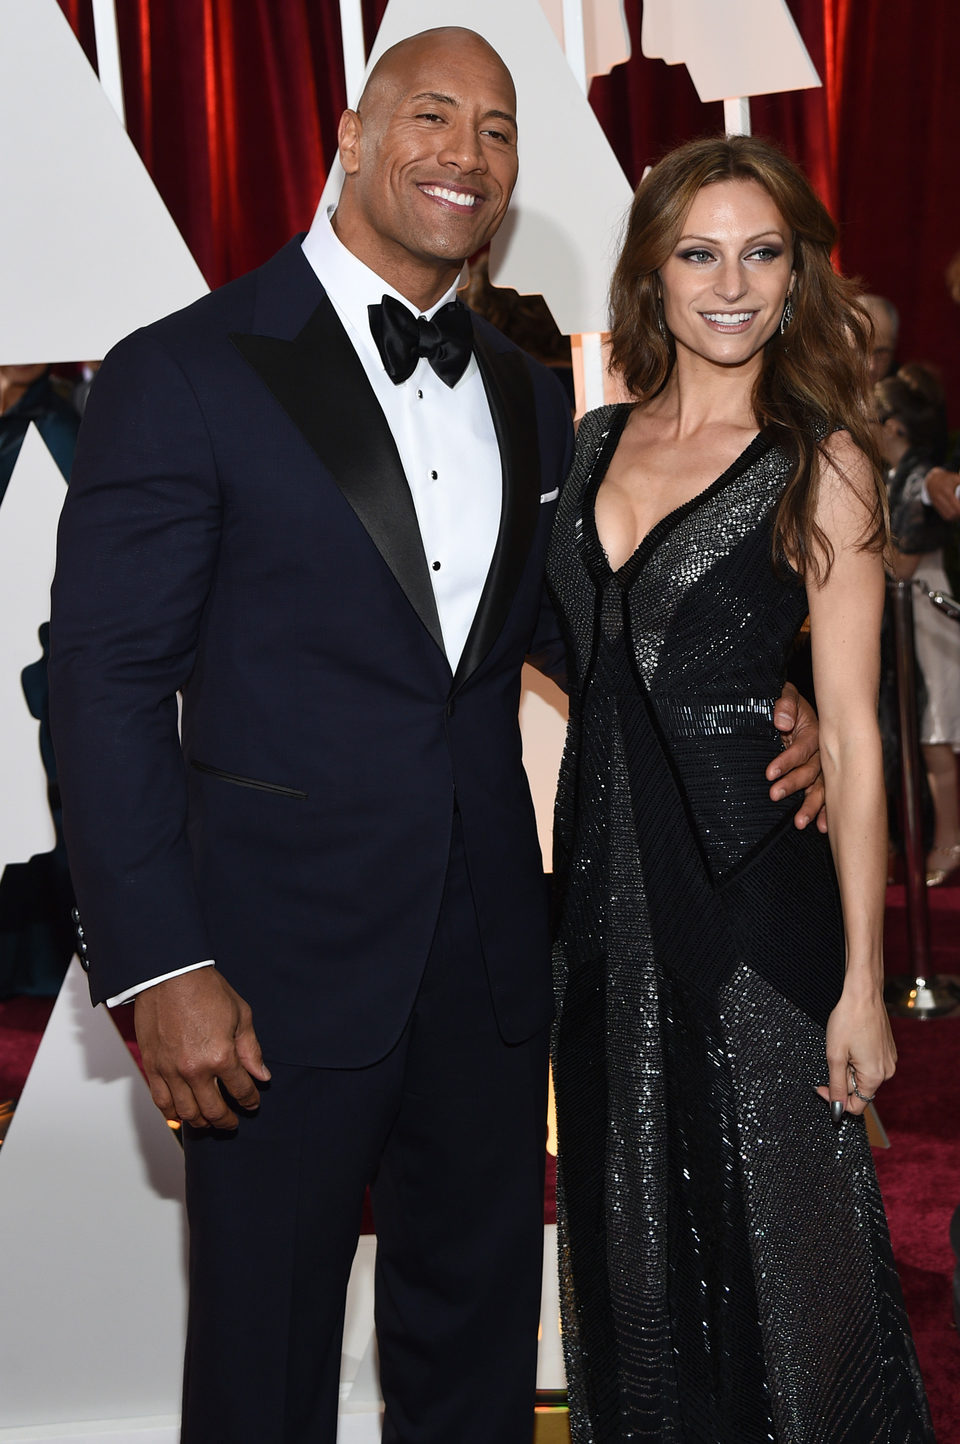 Dwayne Johnson and Lauren Hashian in the Oscar 2015 red carpet